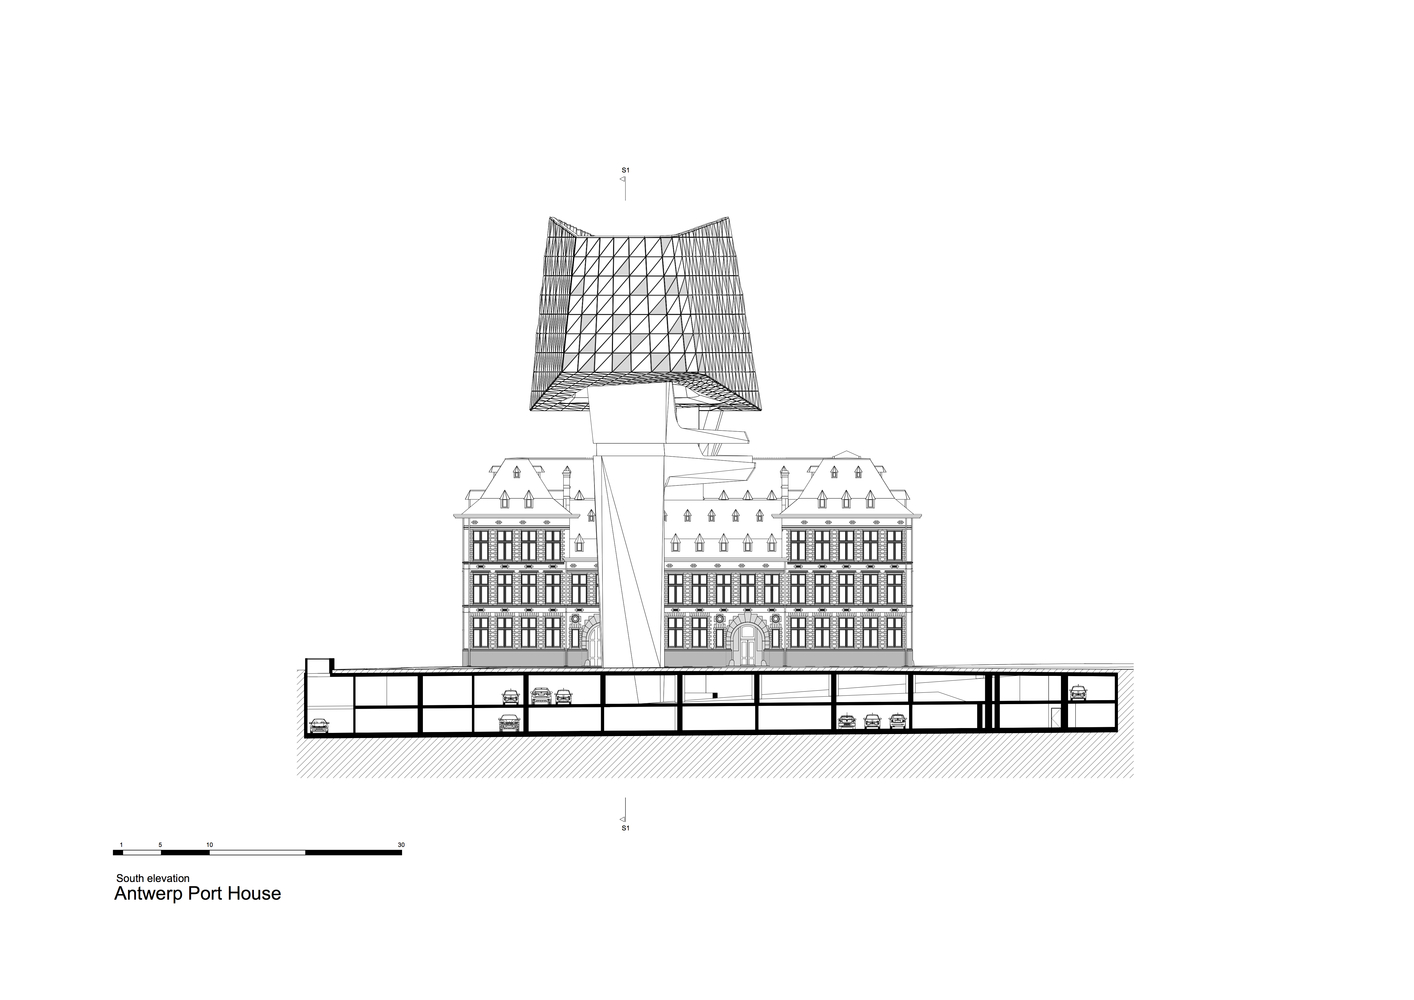 ZHA_Port_House_Antwerp_SOUTH_ELEVATION